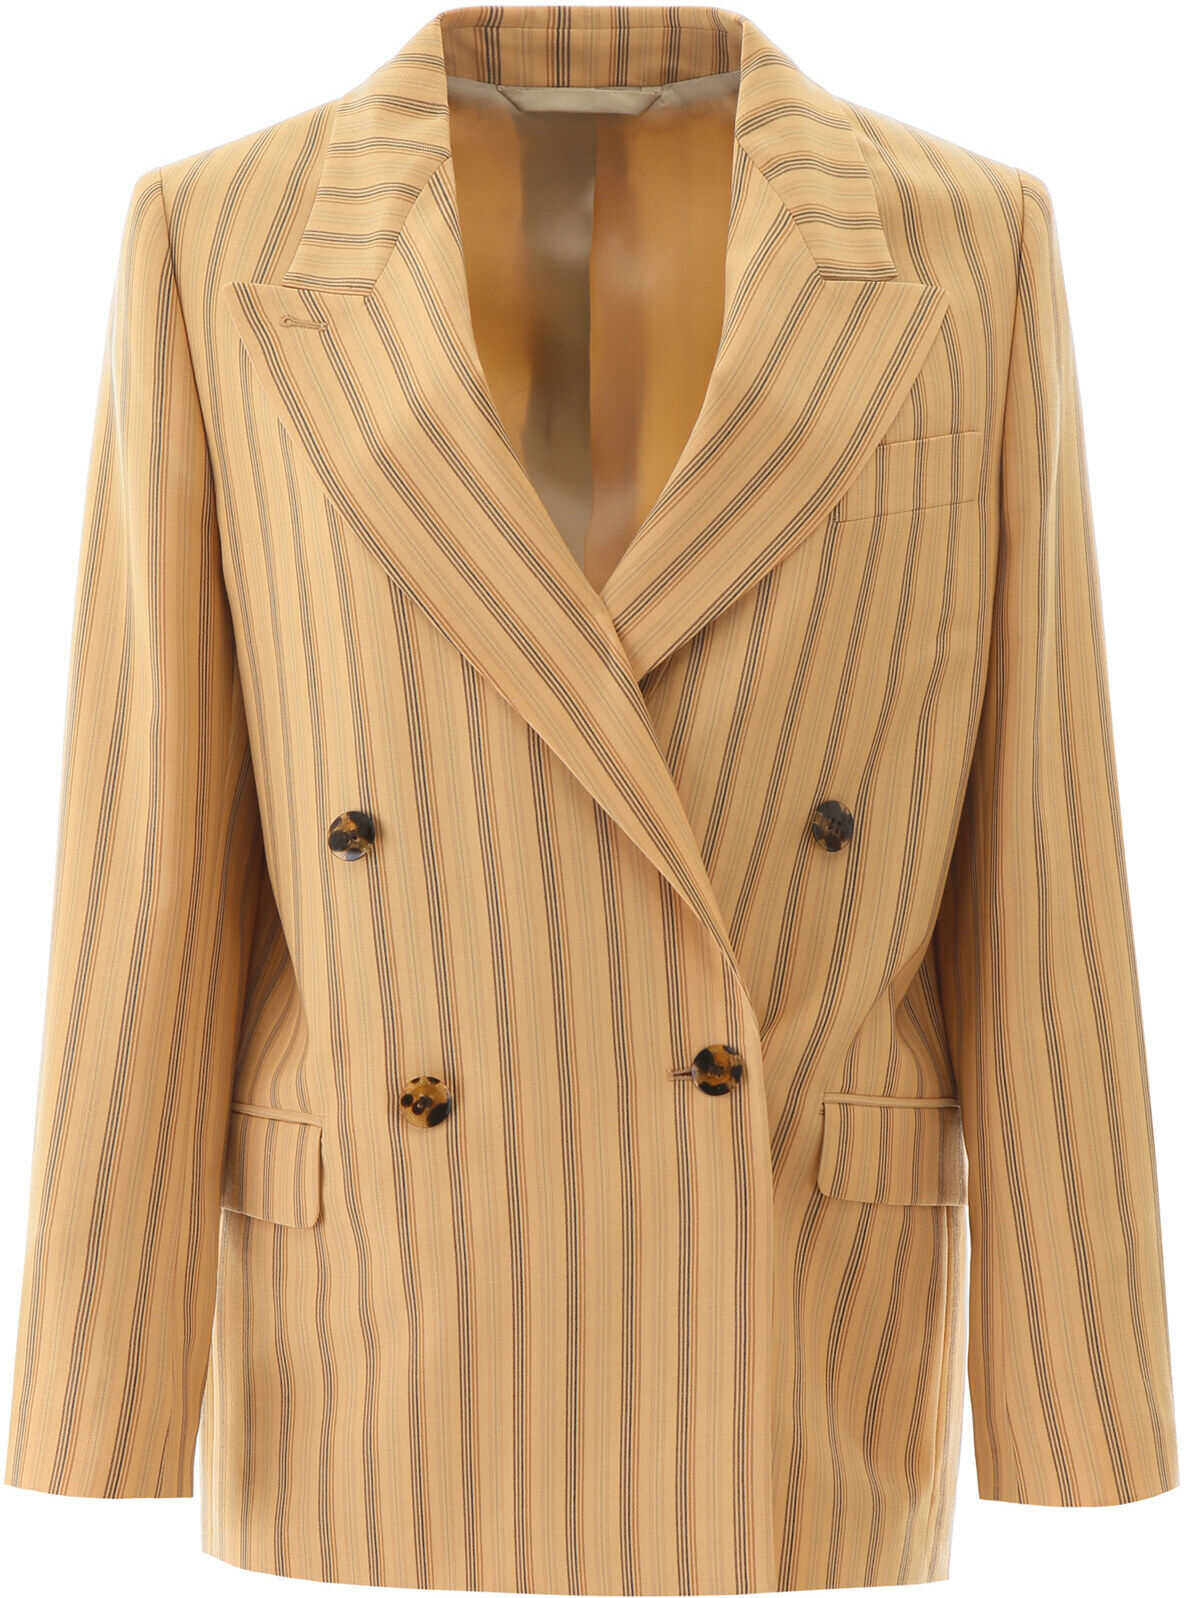 Acne Studios Striped Double-Breasted Jacket PALE ORANGE